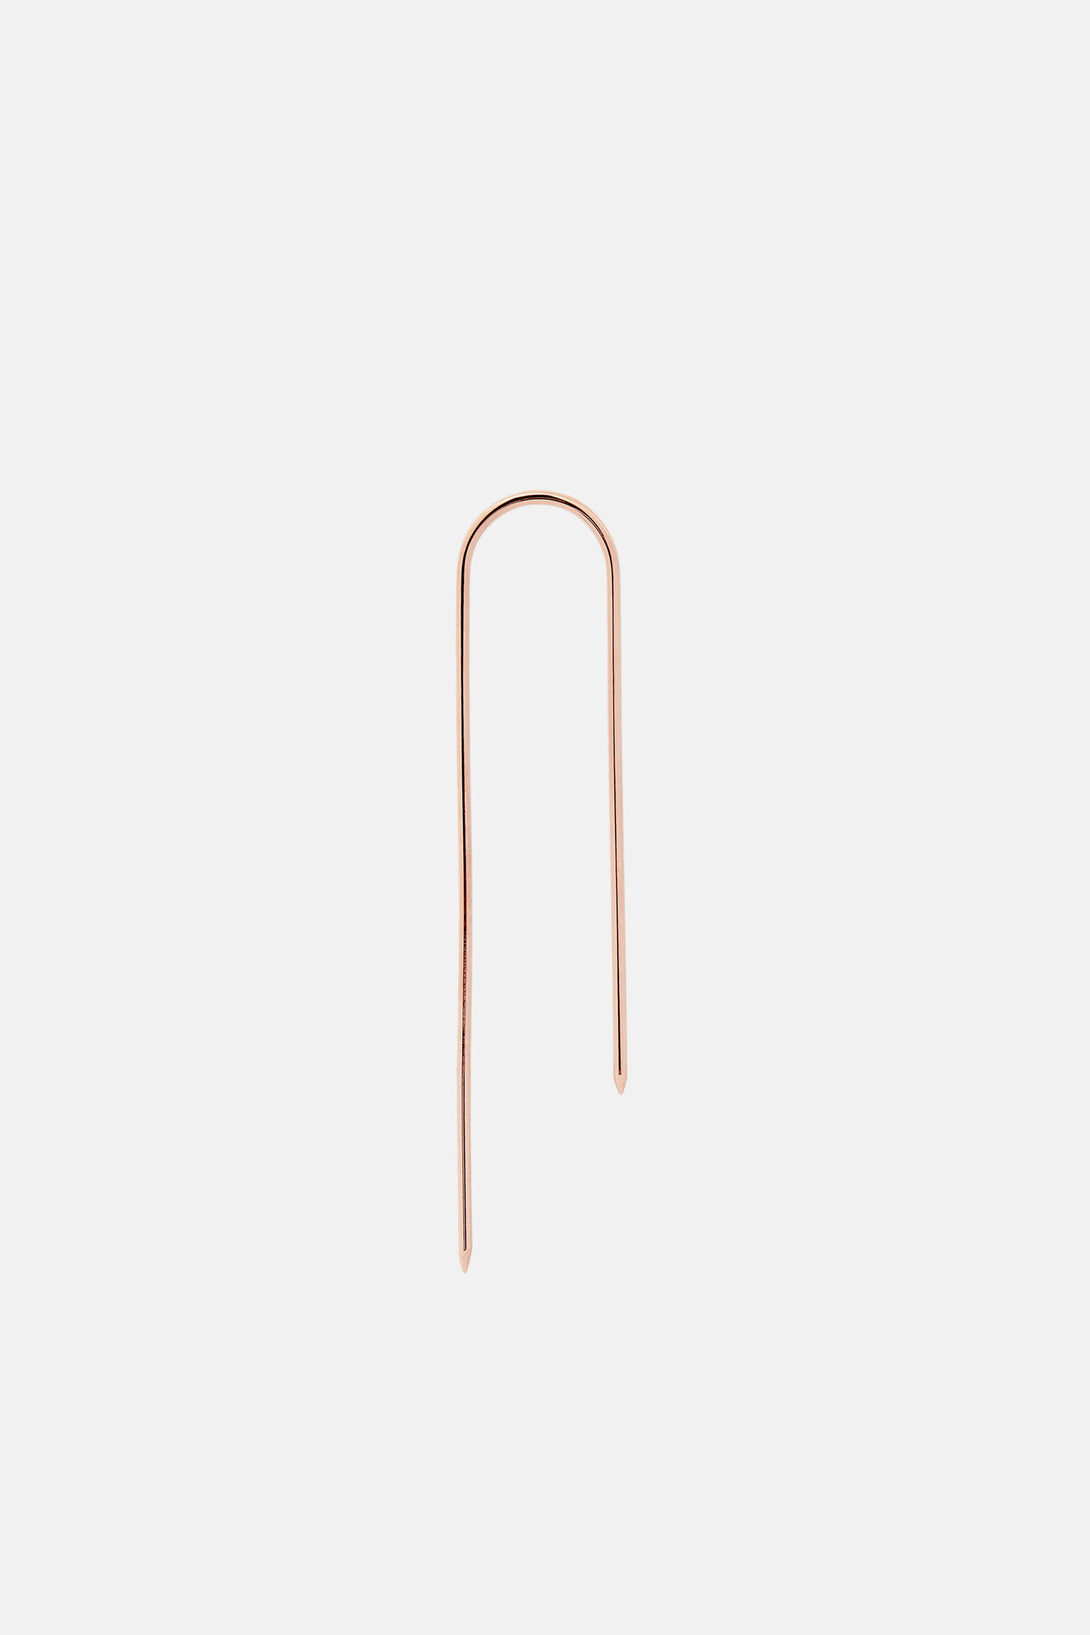 Infinite Hook Earring - 14K Rose Gold